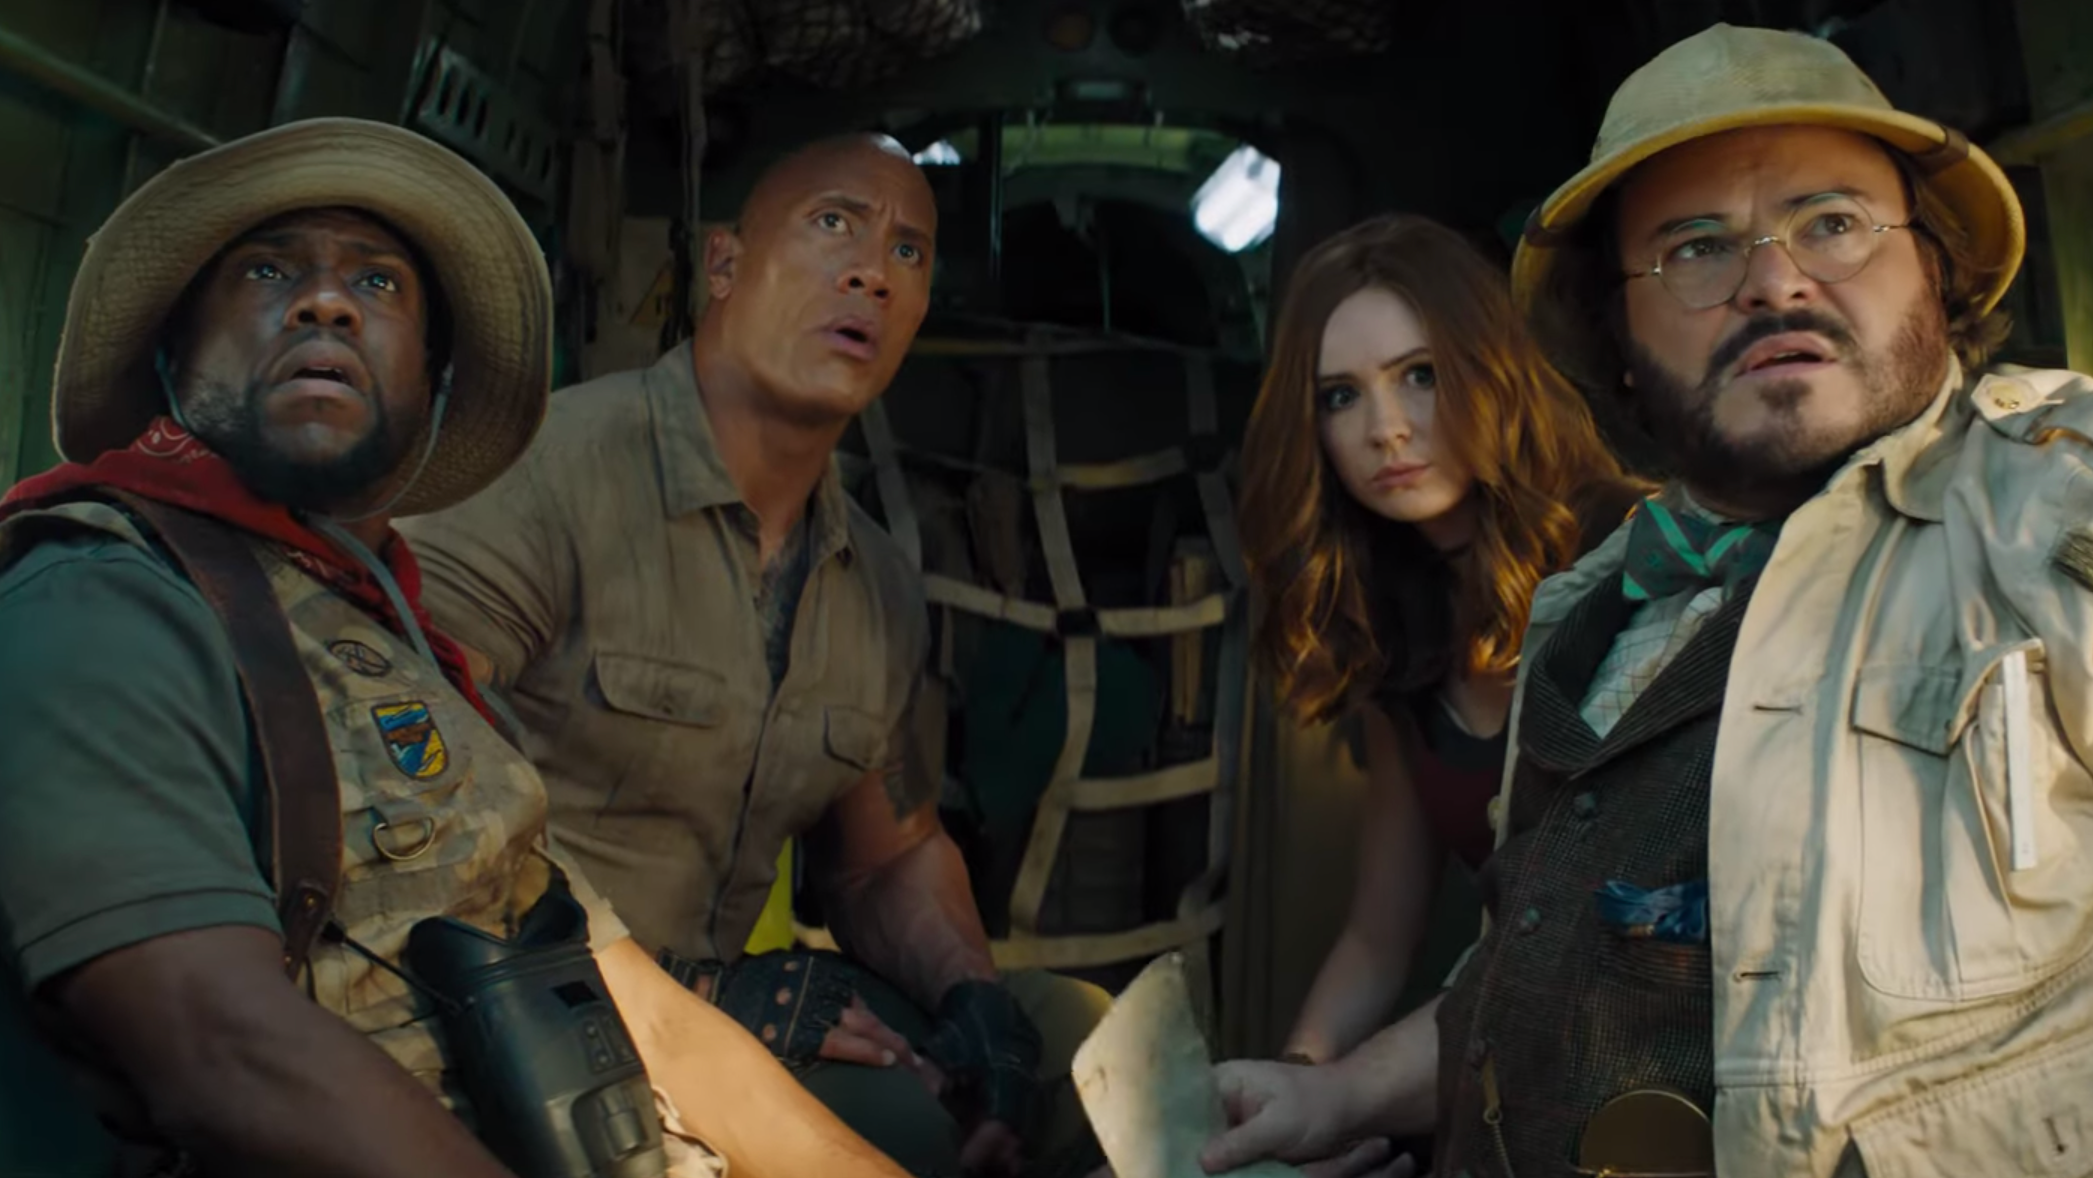 Danny DeVito And Danny Glover Dive Into The Hilarious First Trailer For Jumanji: The Next Level